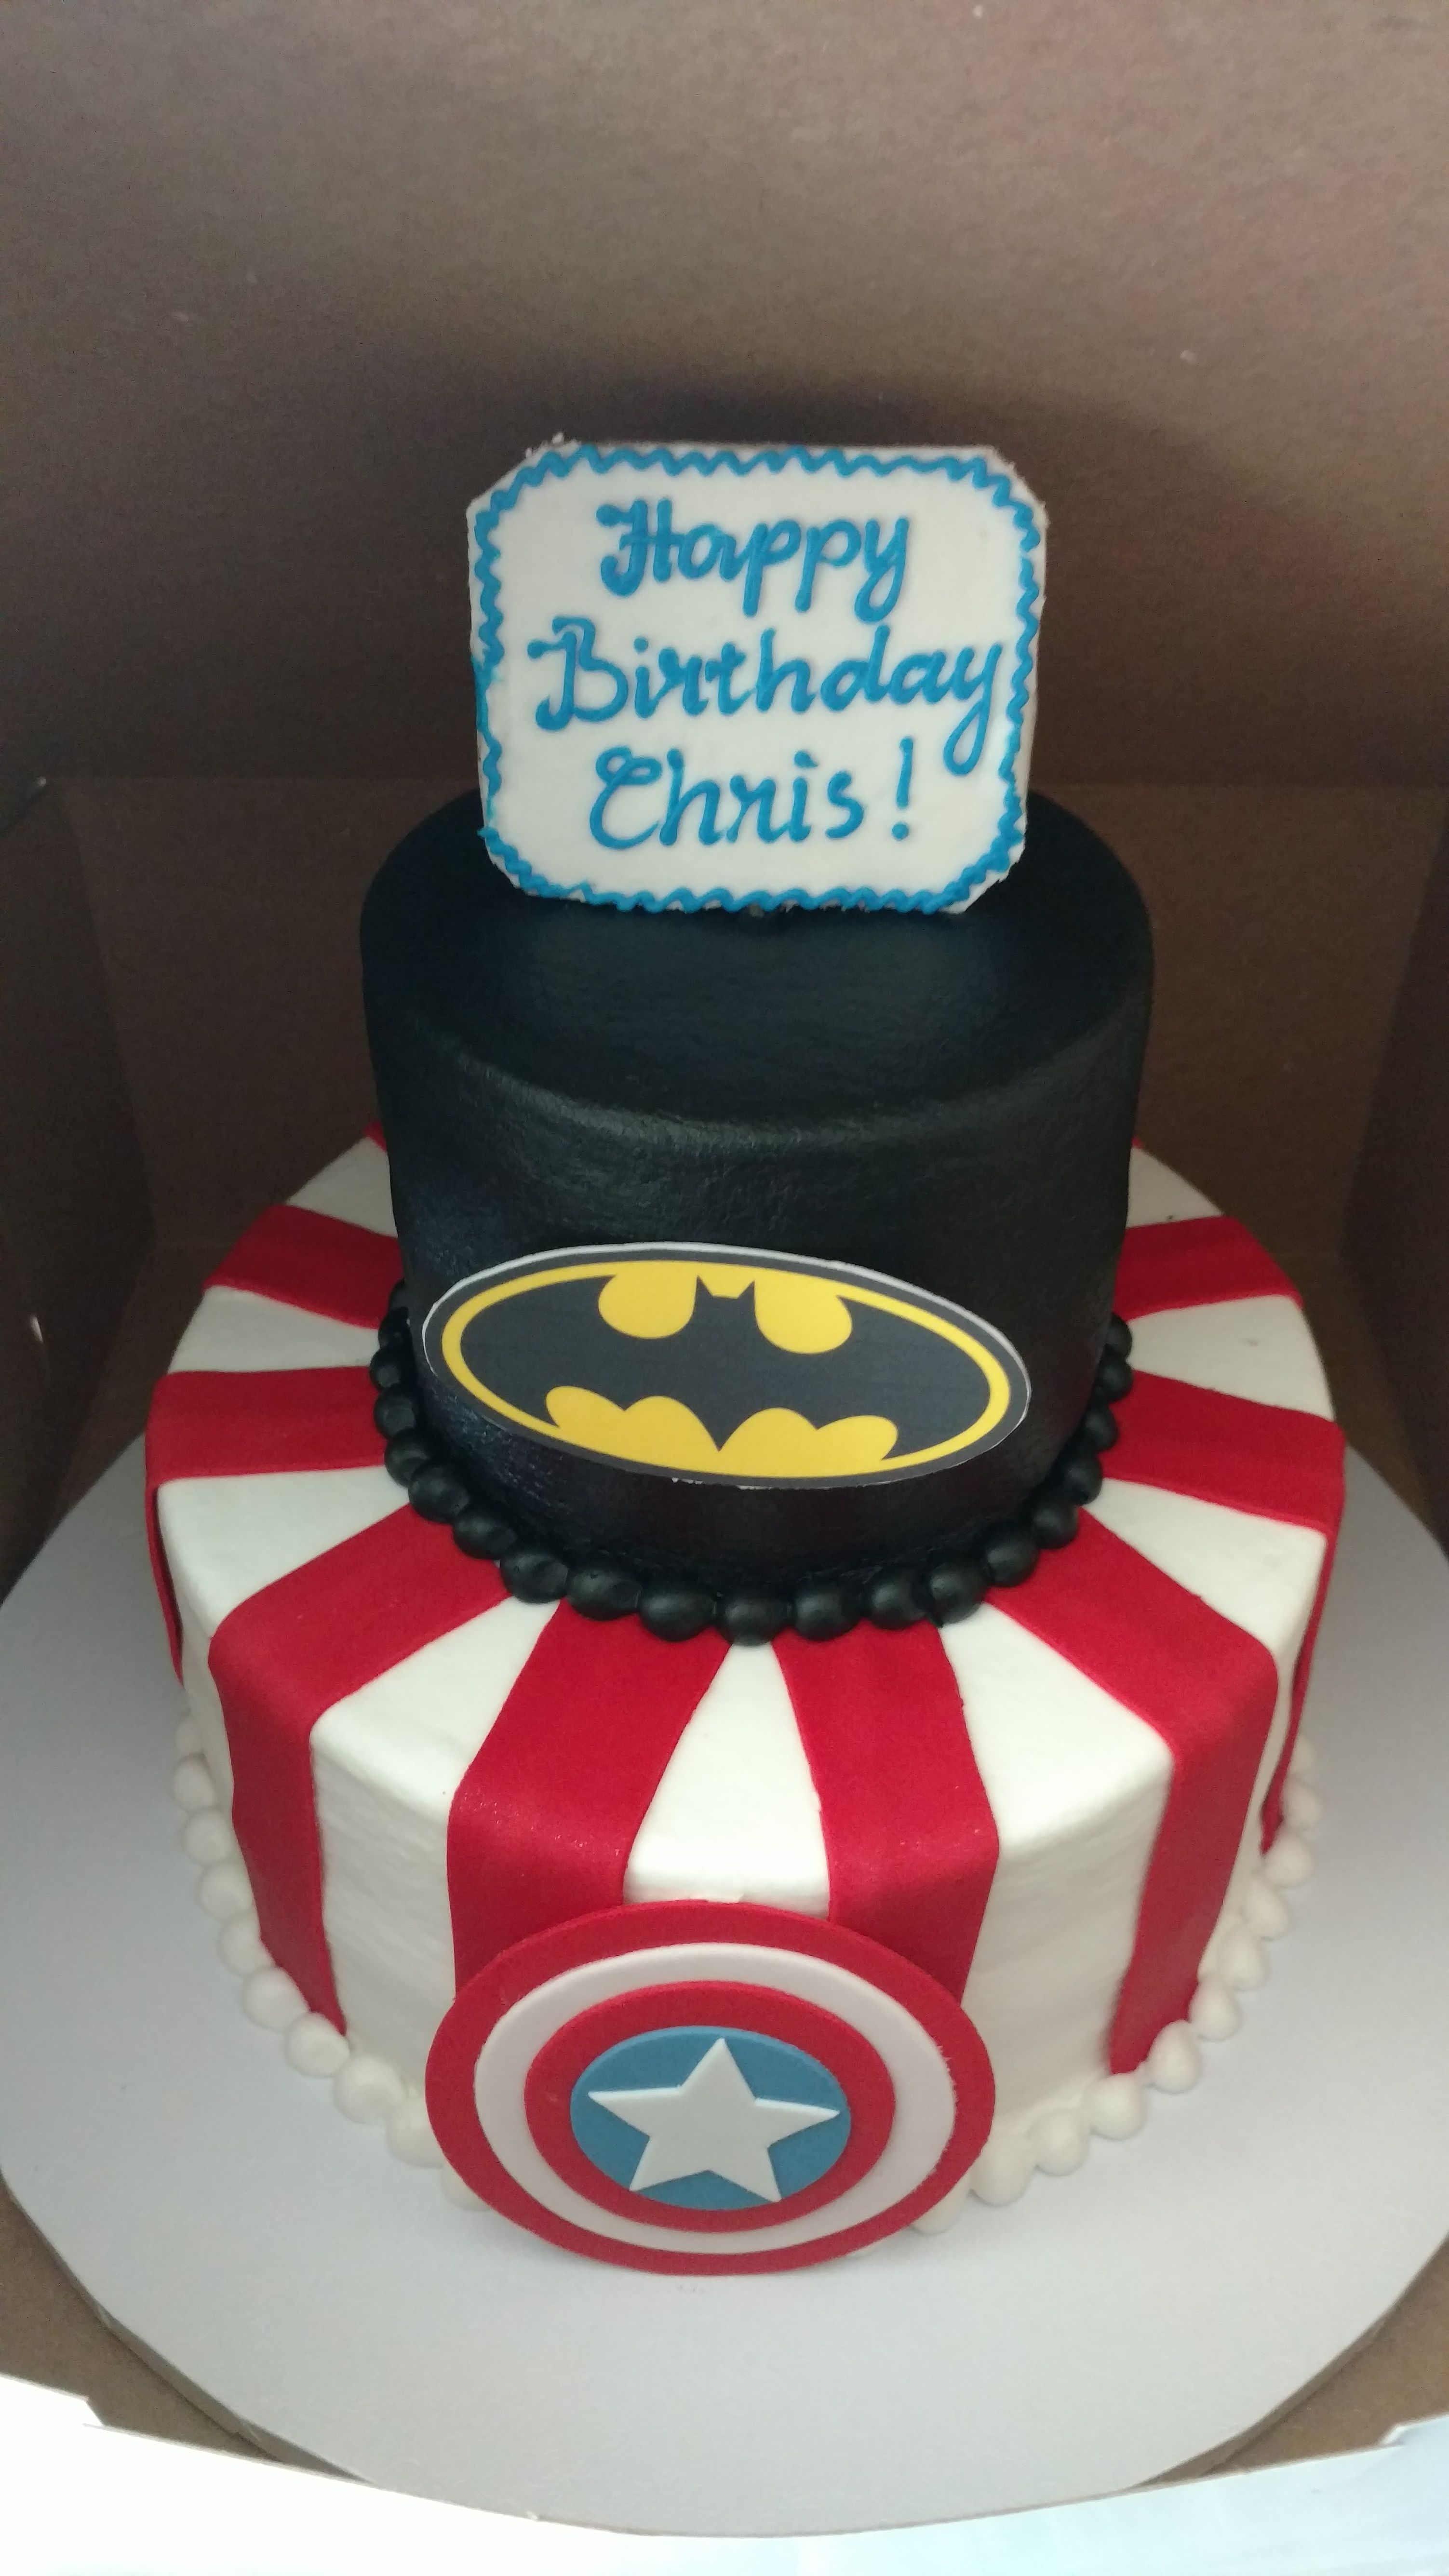 Marvel Cake Design Image Result For Superhero Giant Cupcake Marvel Birthday In True Superhero Fashion I Caked Up Some Marvel Avengers Mini Cakes And Joined Forces By Premiering